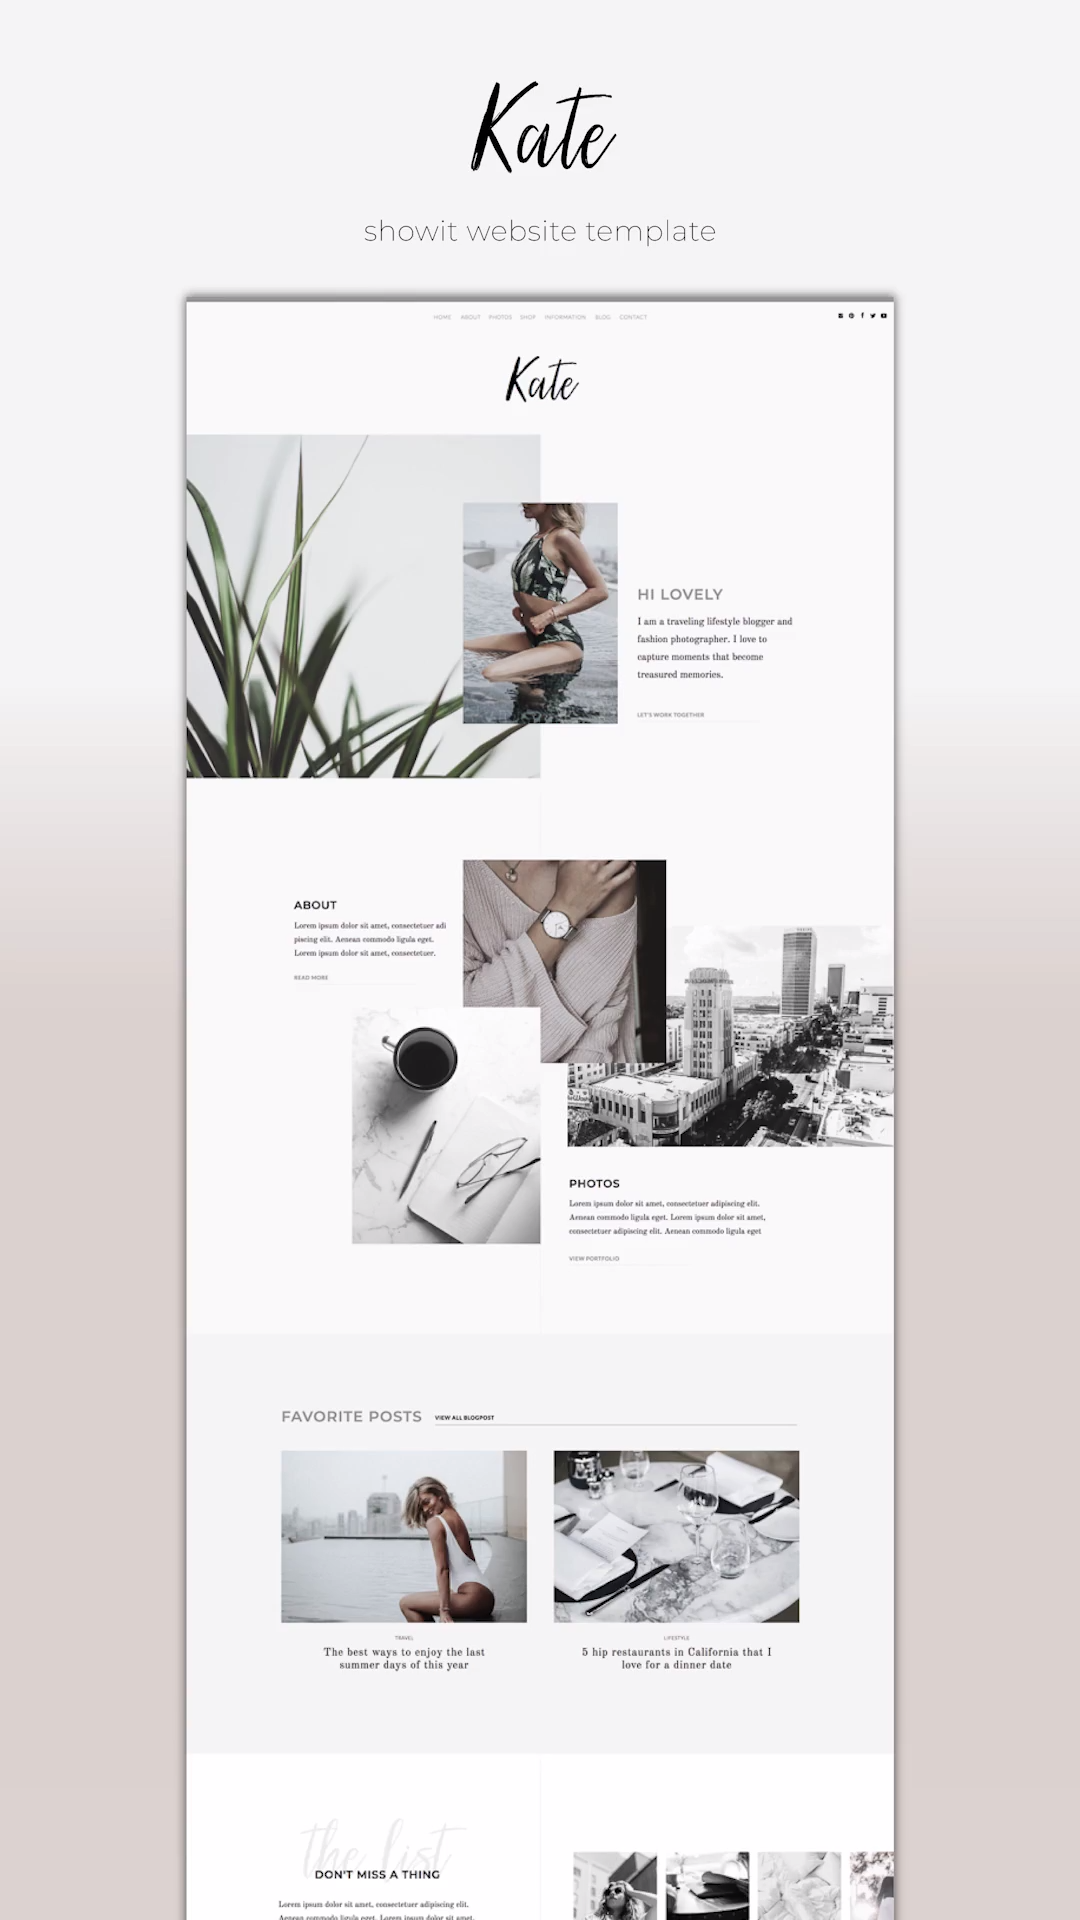 Designer-made Showit Website Template. Quickly launch a highly stylish website for a small budget. #showit #website #template #webdesign #branding #business #creative #professional #modern #minimalst #feminine #top #best